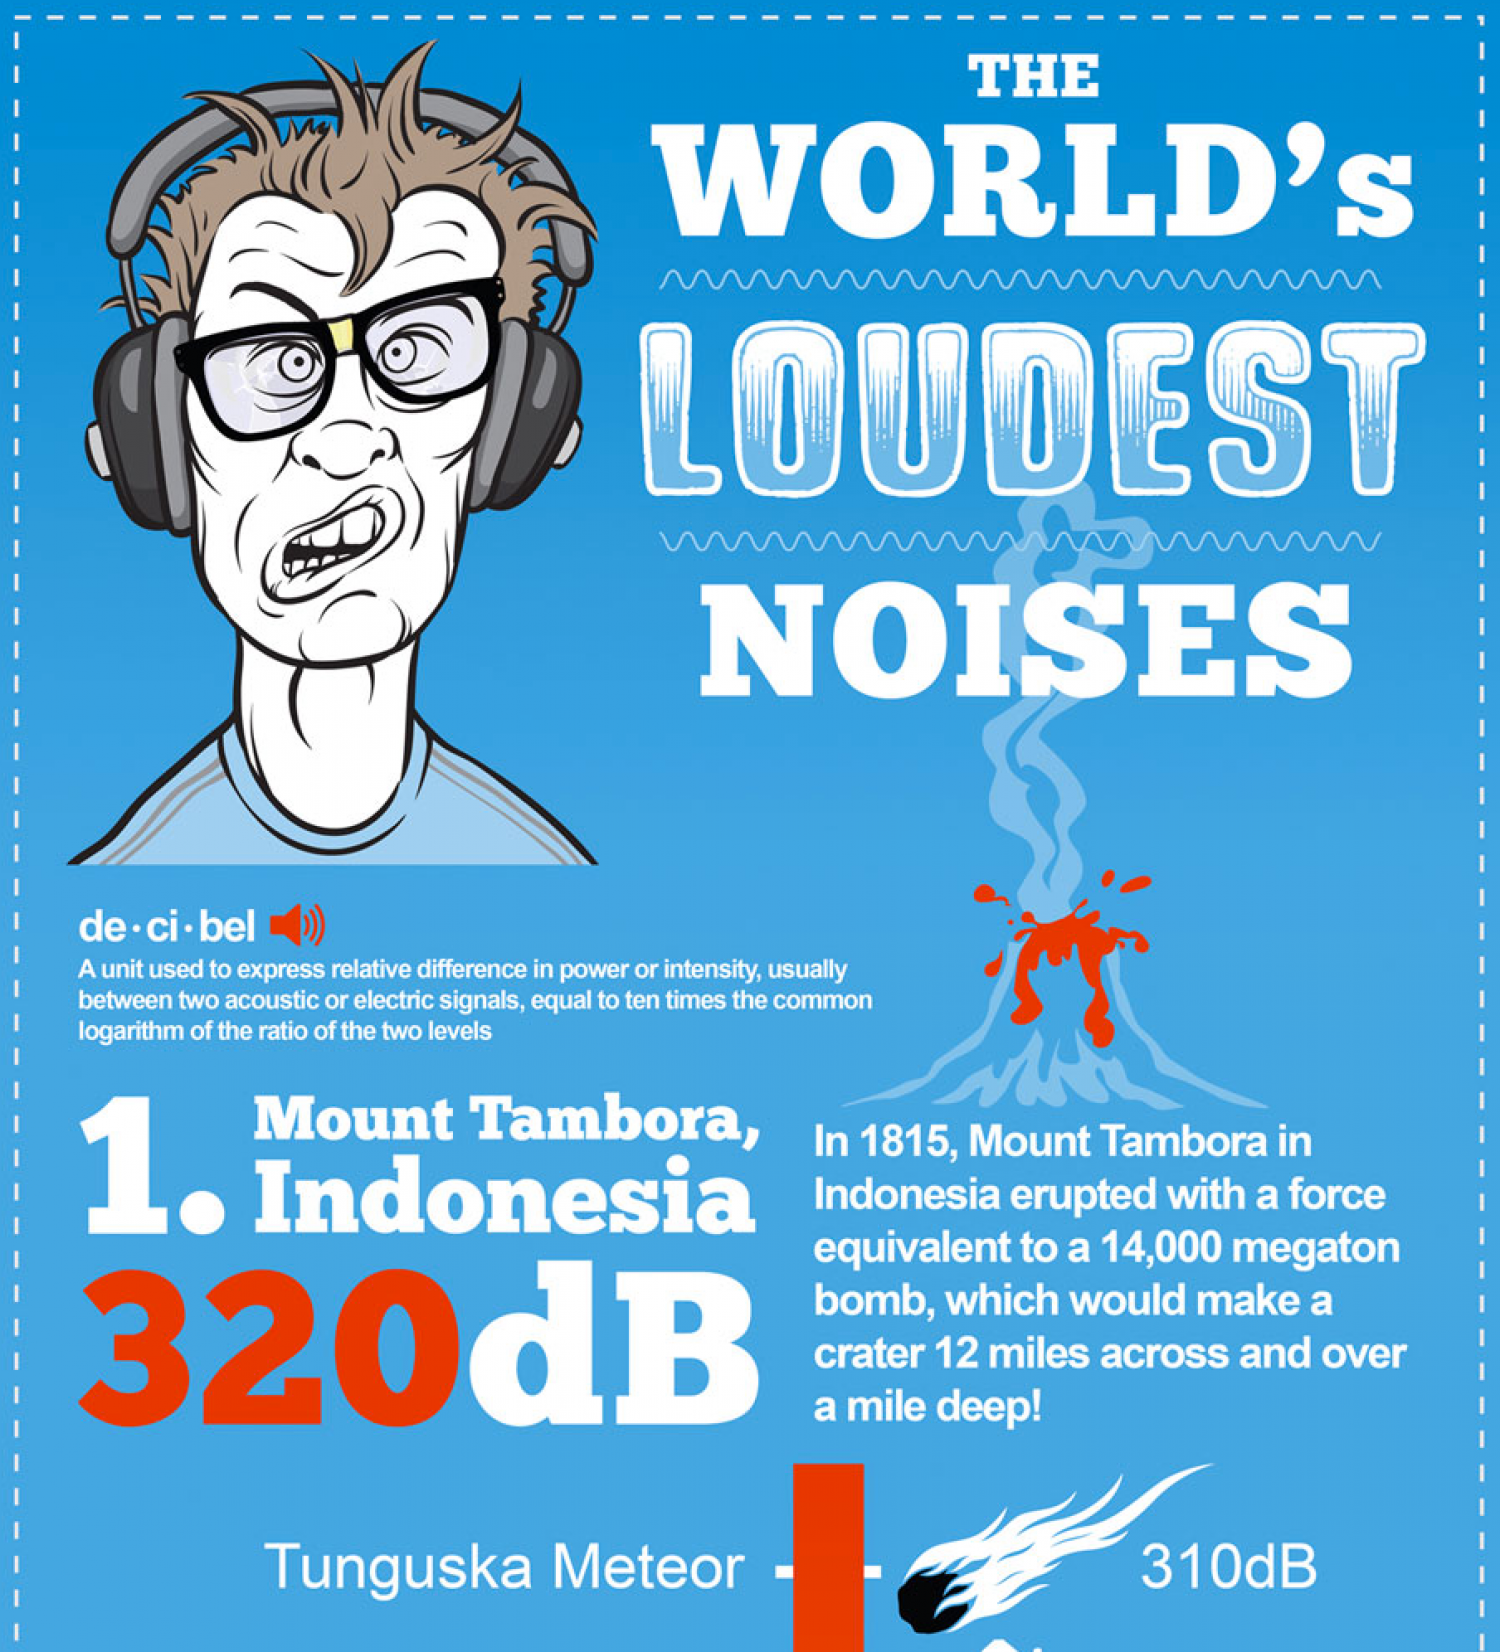 The World's Loudest Noises Infographic